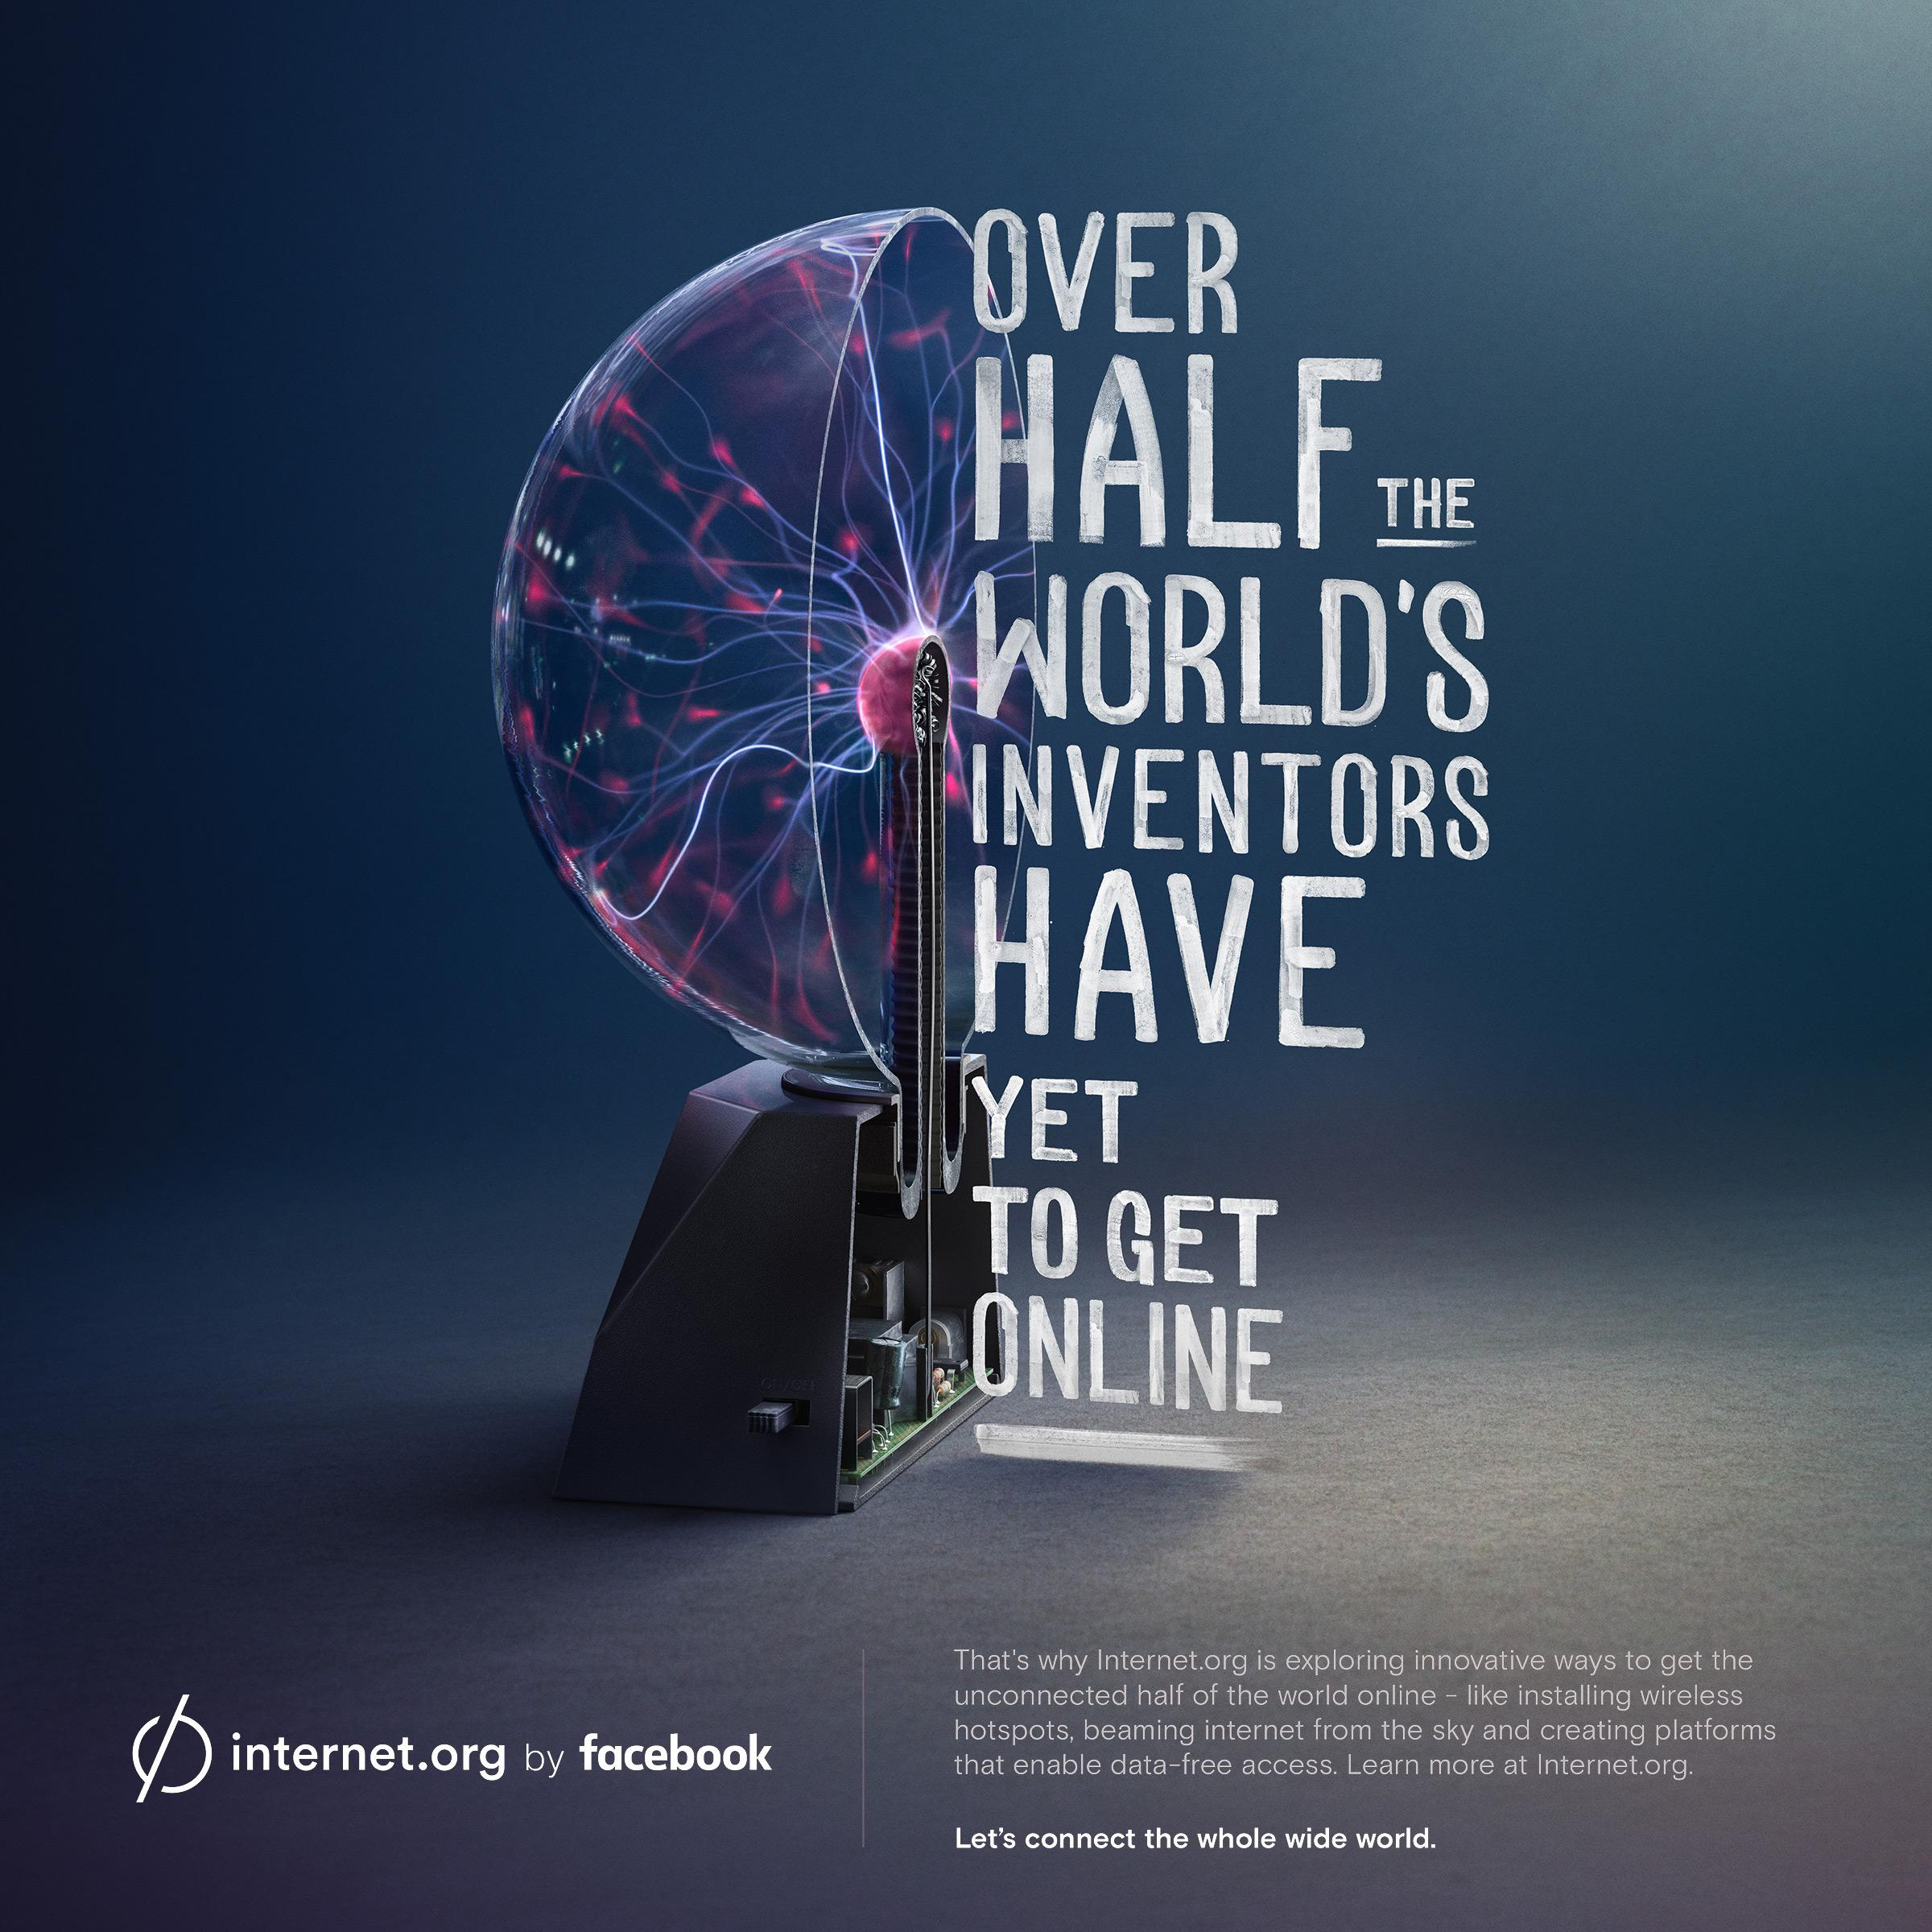 Facebook Print Ad - internet.org - Inventors